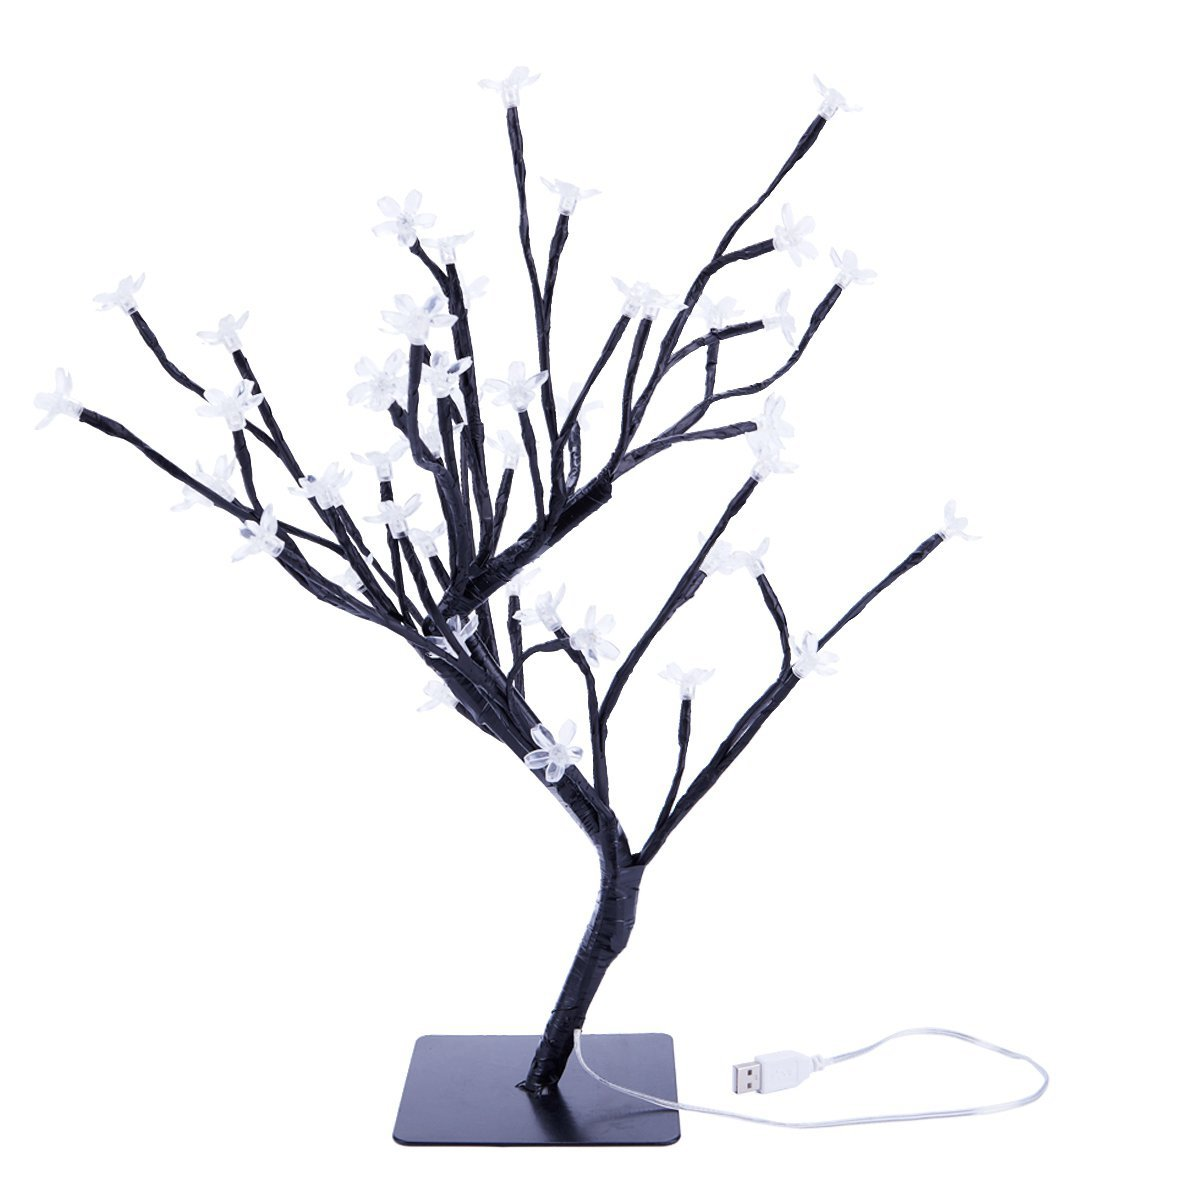 SODIAL 18 Inch Cherry Blossom Bonsai Tree, 48 LED Lights, Warm White Lights, Ideal as Night Lights, Home Gift Idea